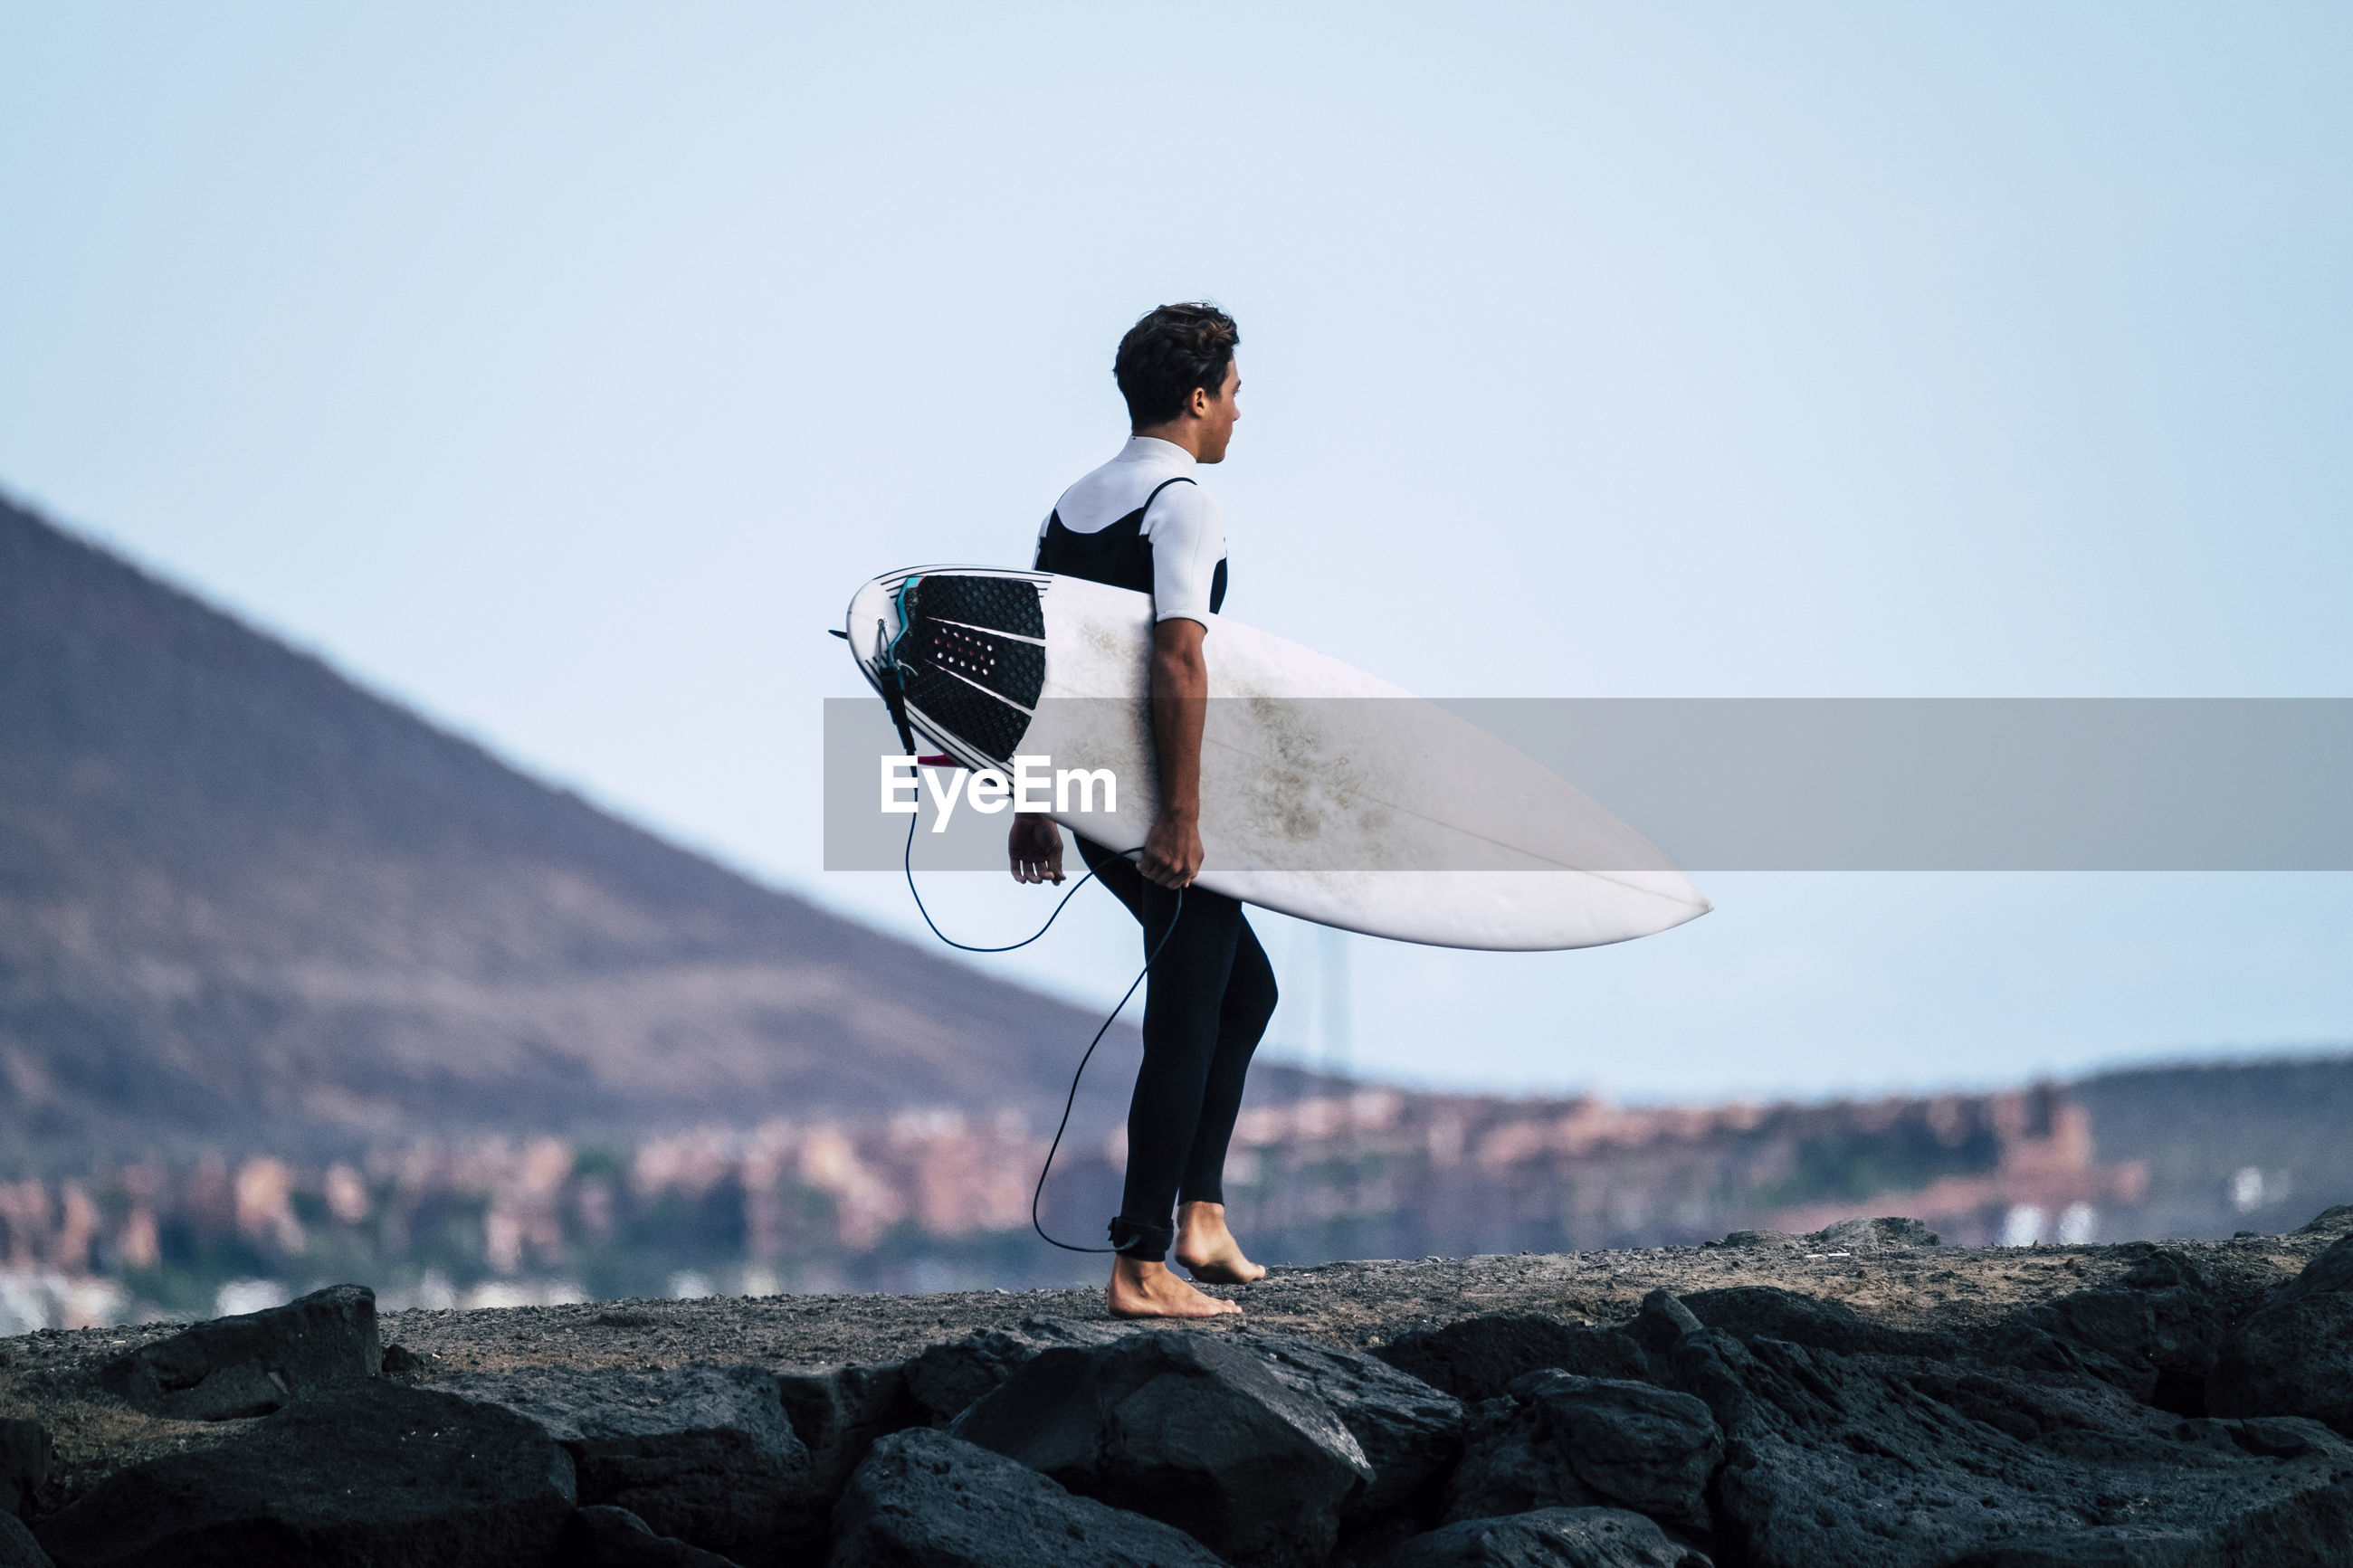 Teenage boy holding surfboard while standing on rock against clear sky